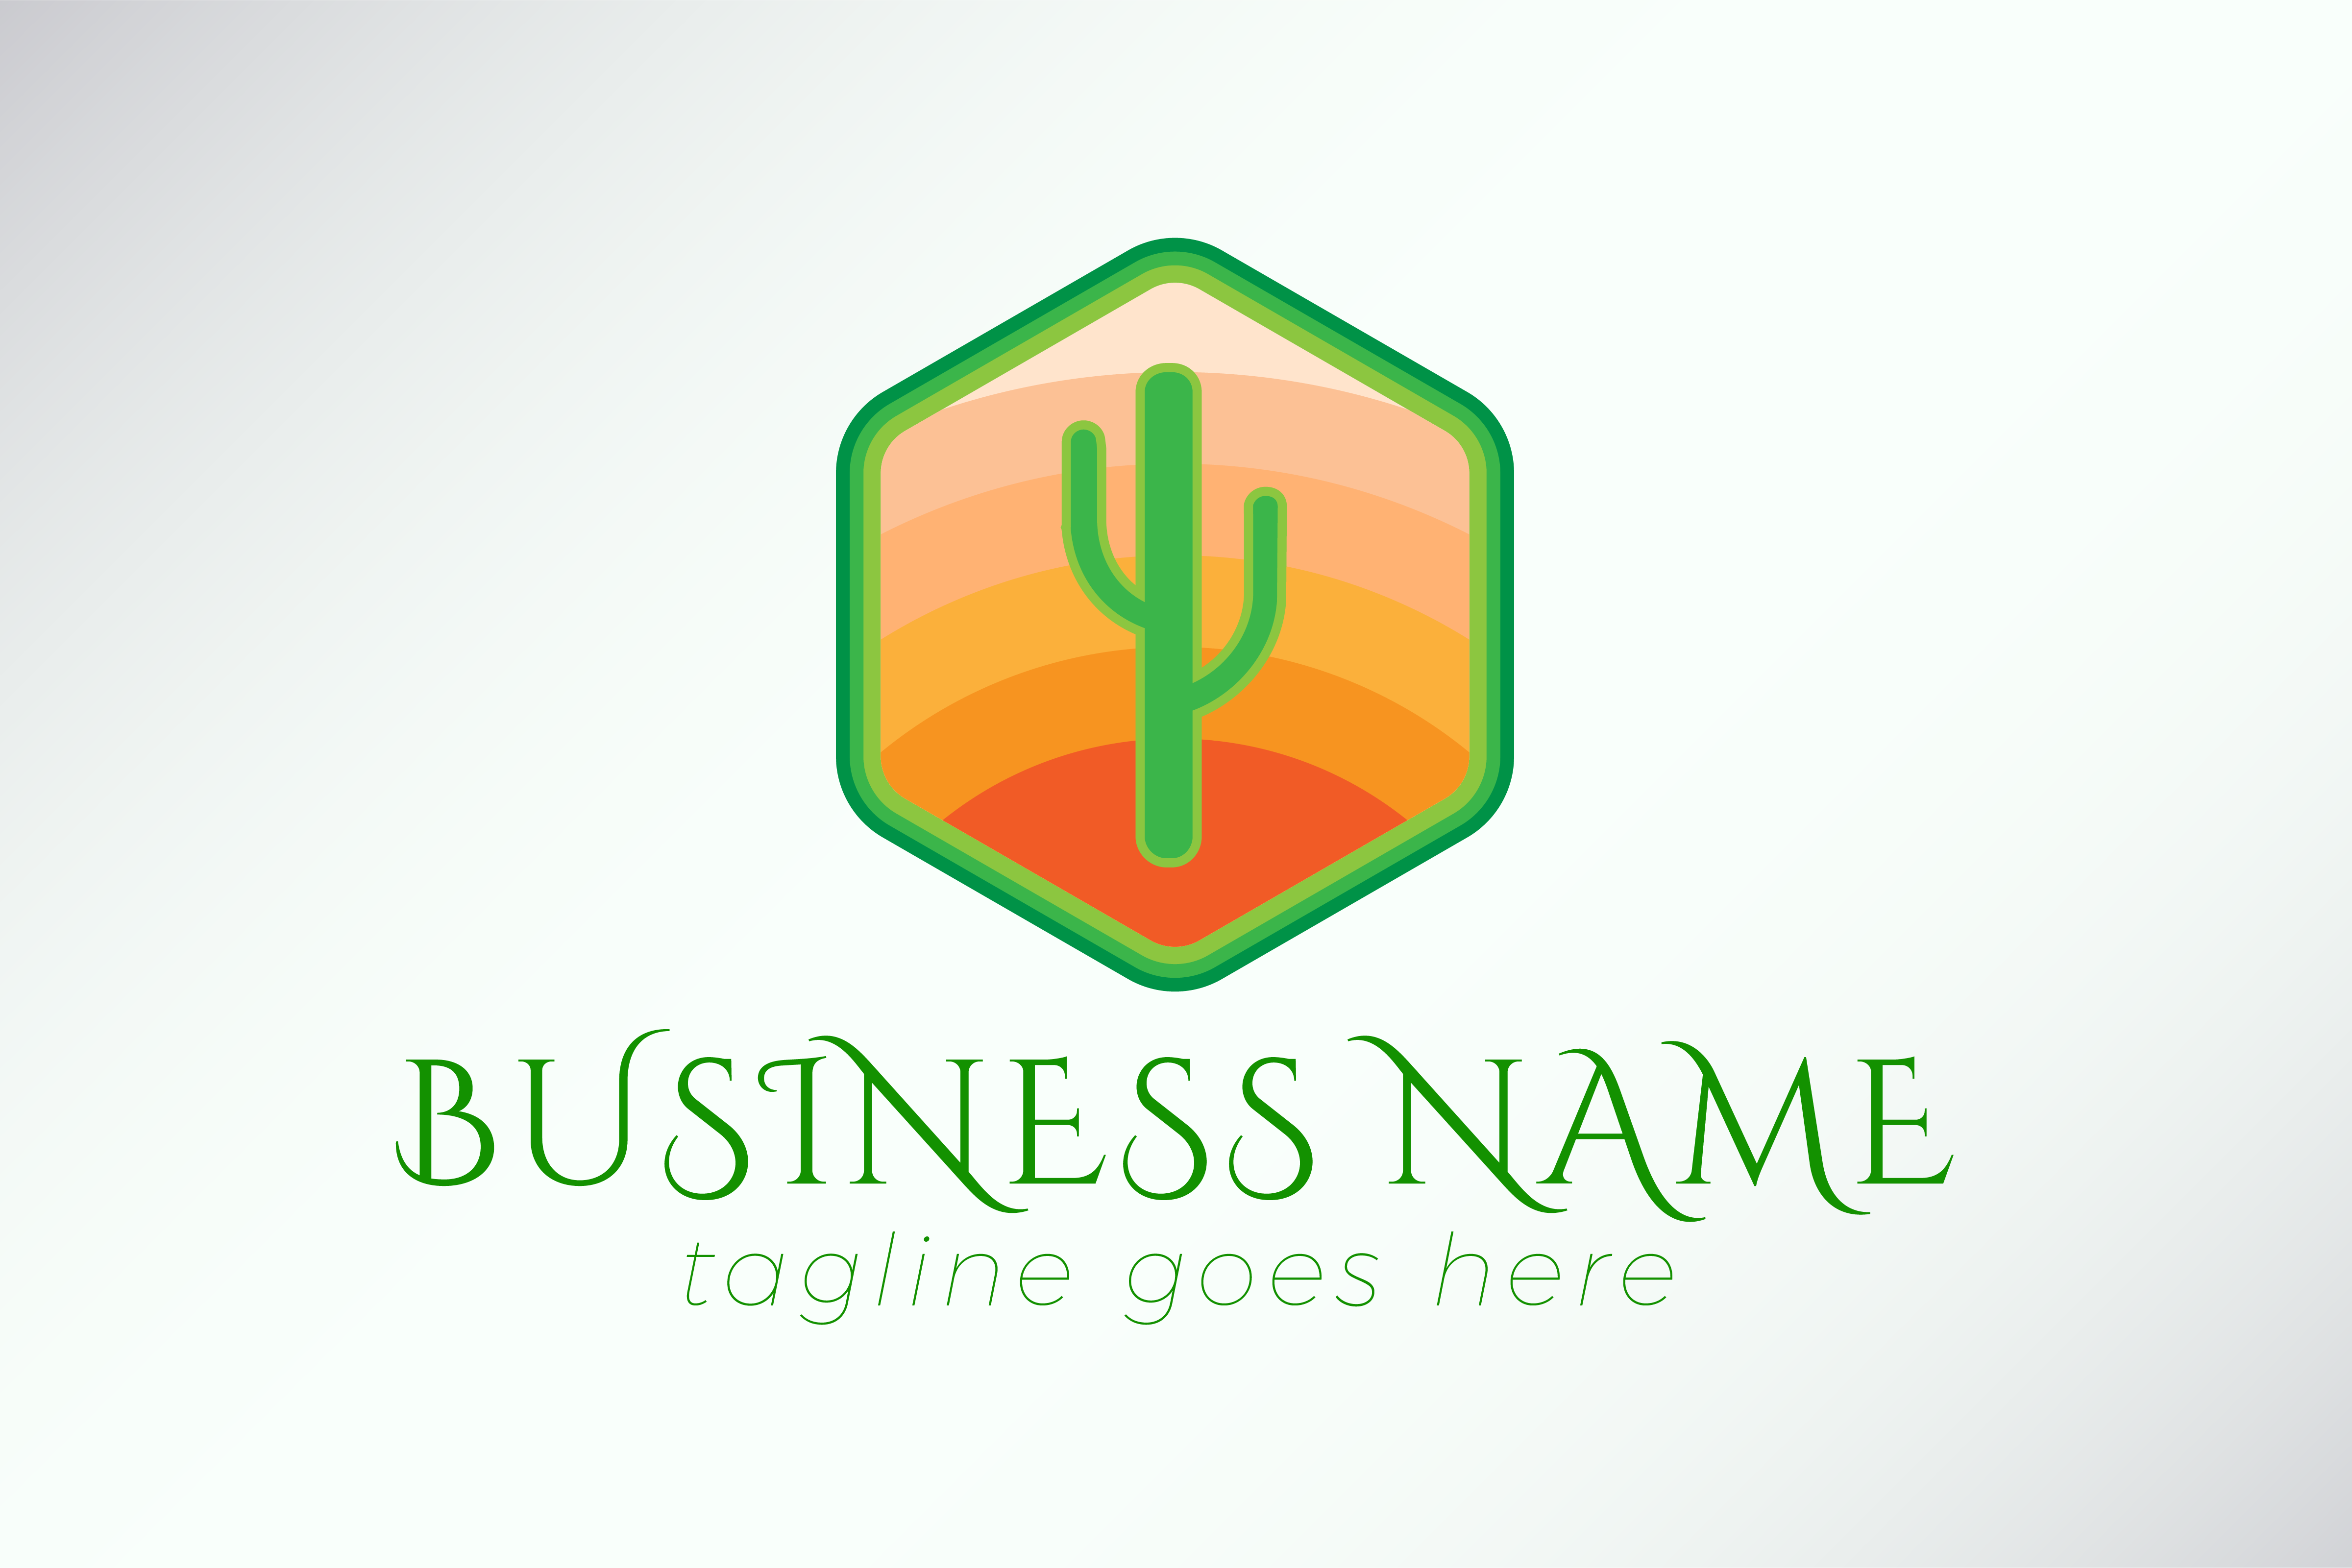 Download Free Cactus Logo Template For Business Graphic By Studioaneukmuda for Cricut Explore, Silhouette and other cutting machines.